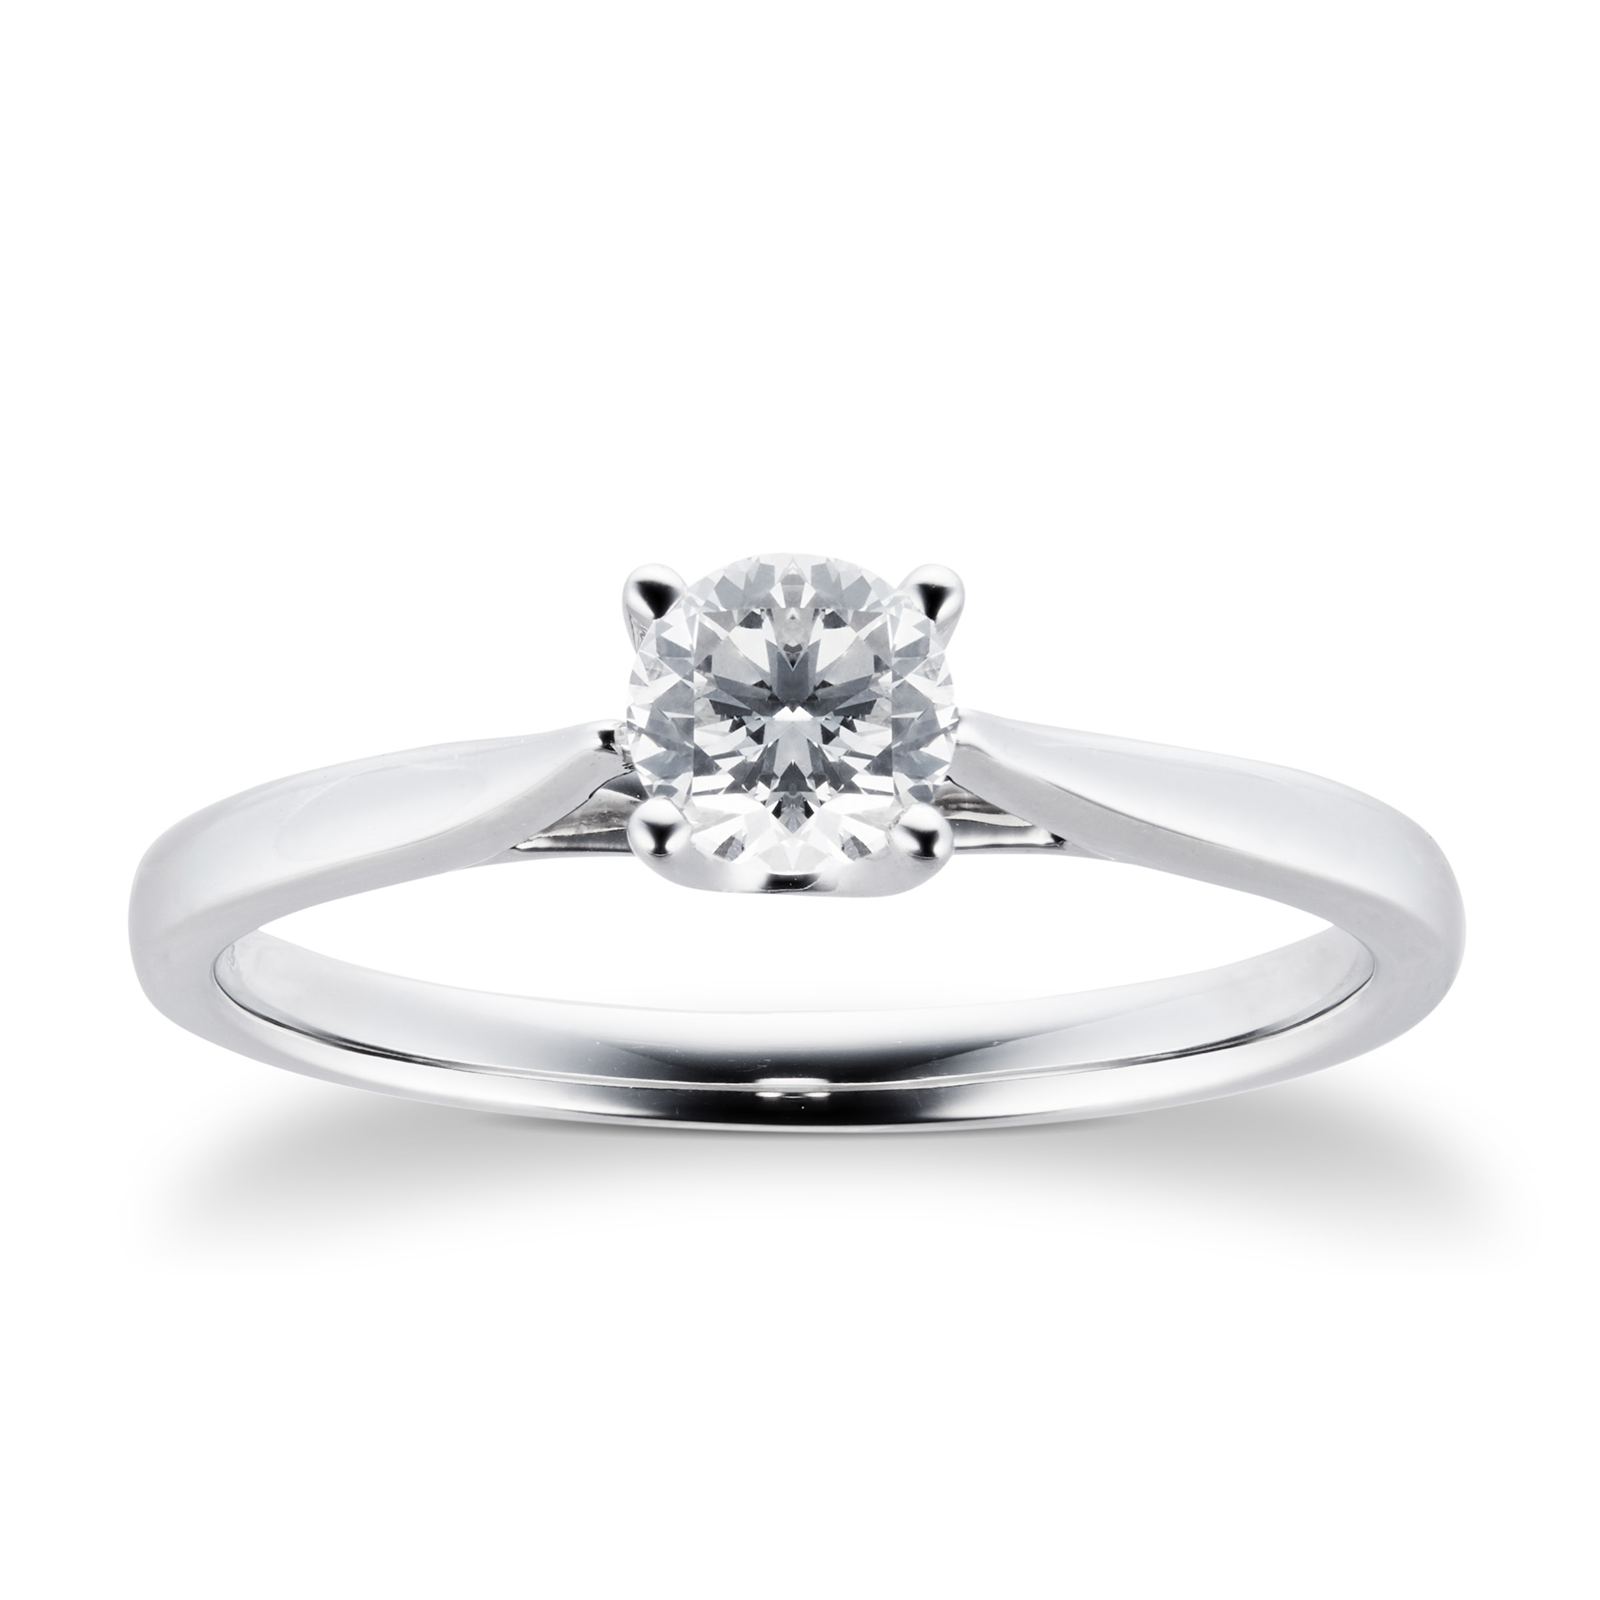 Platinum Brilliant Cut 0.40 Carat 88 Facet Diamond Ring - Ring Size J